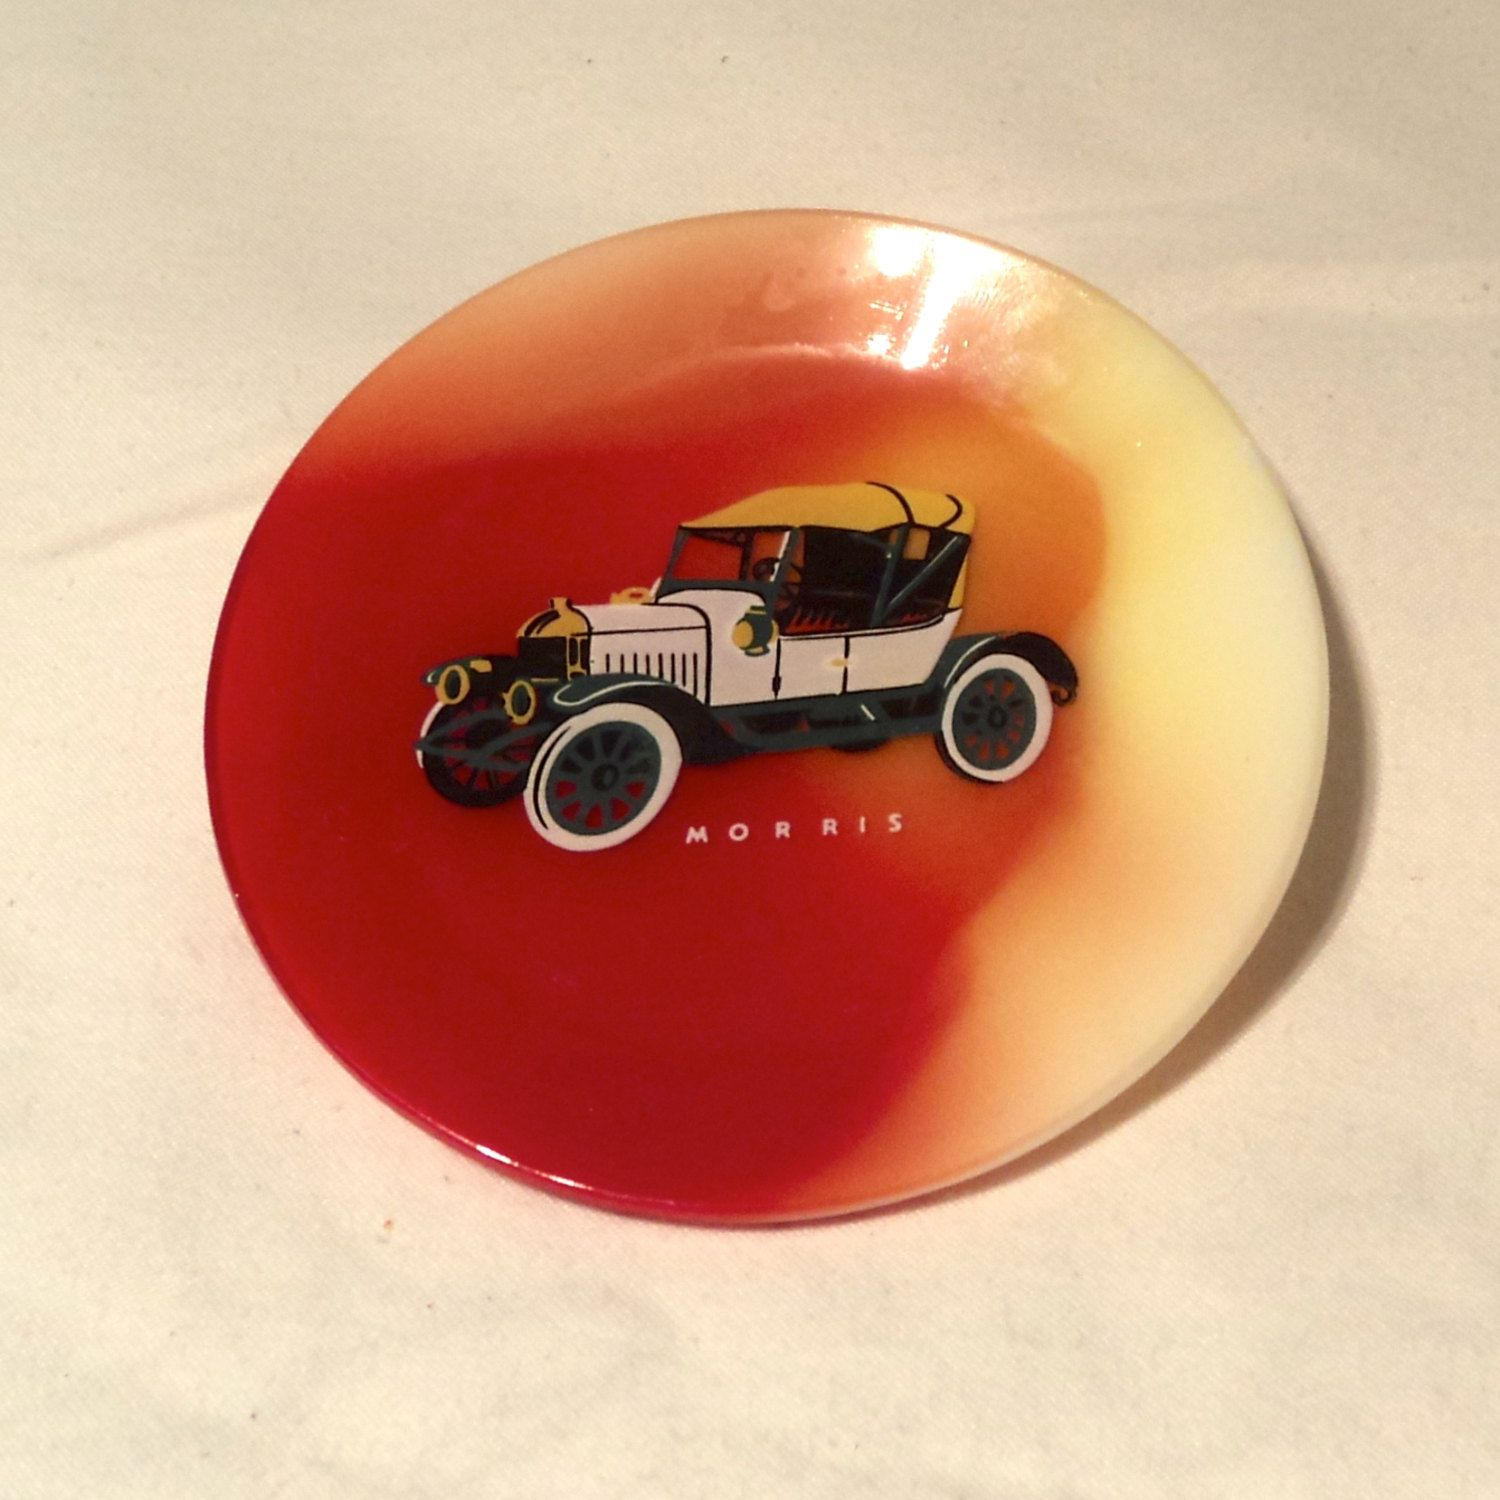 Mid Century Modern MORRIS Car Marbled Red Yellow Glass Plate Collectible Retro Vintage 4 inch Decorative Tray by saram1978 on Etsy